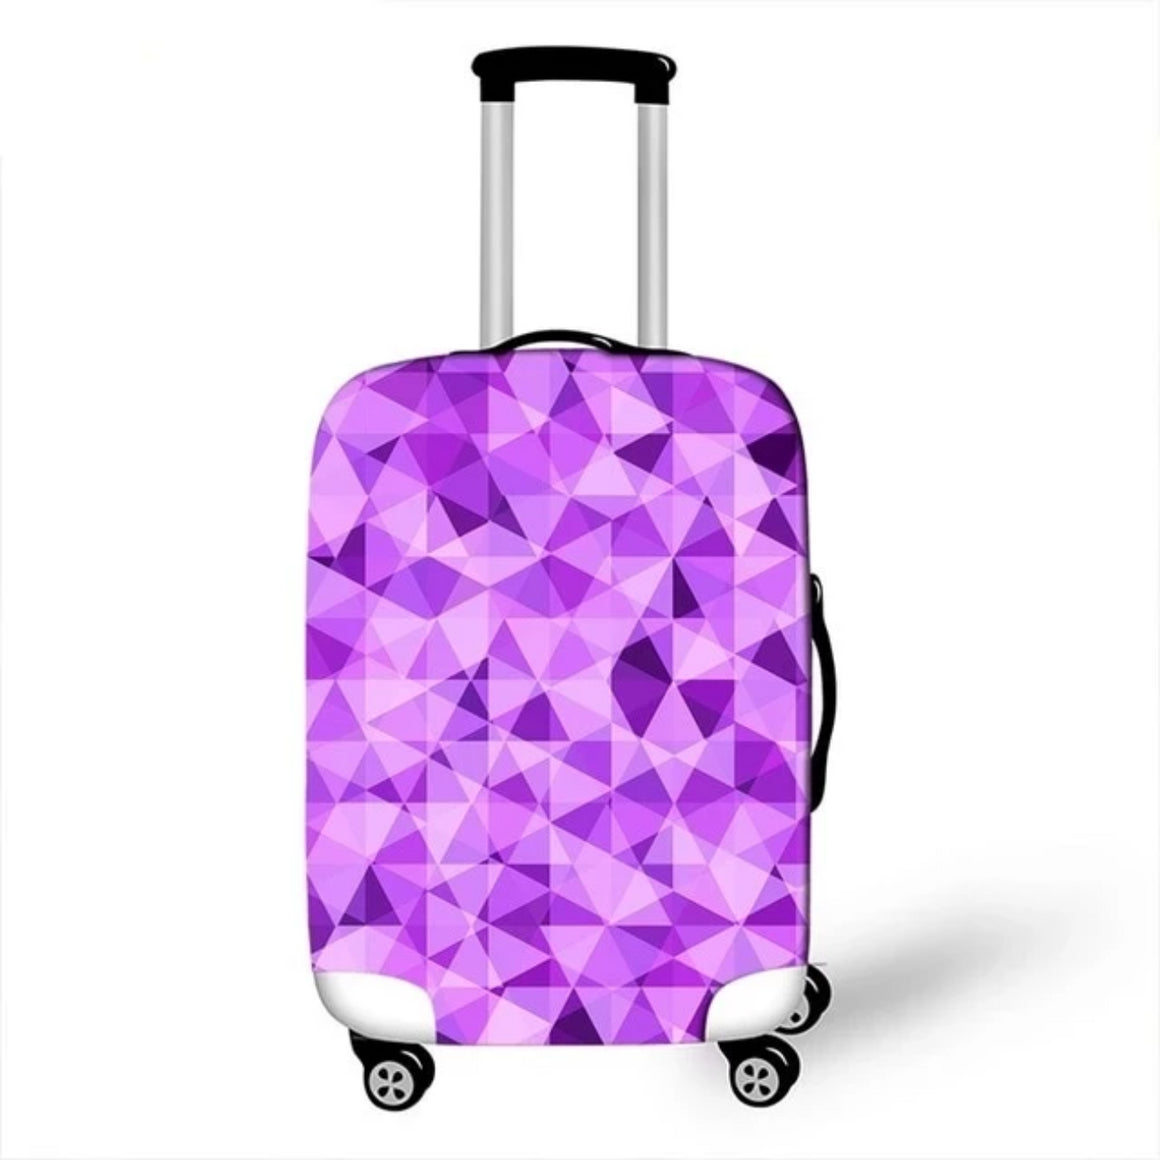 Geometric Travel Bag Cover Patchwork Suitcase Protective Cover Triangle Shape Luggage Case Protector Portable Travel Accessories